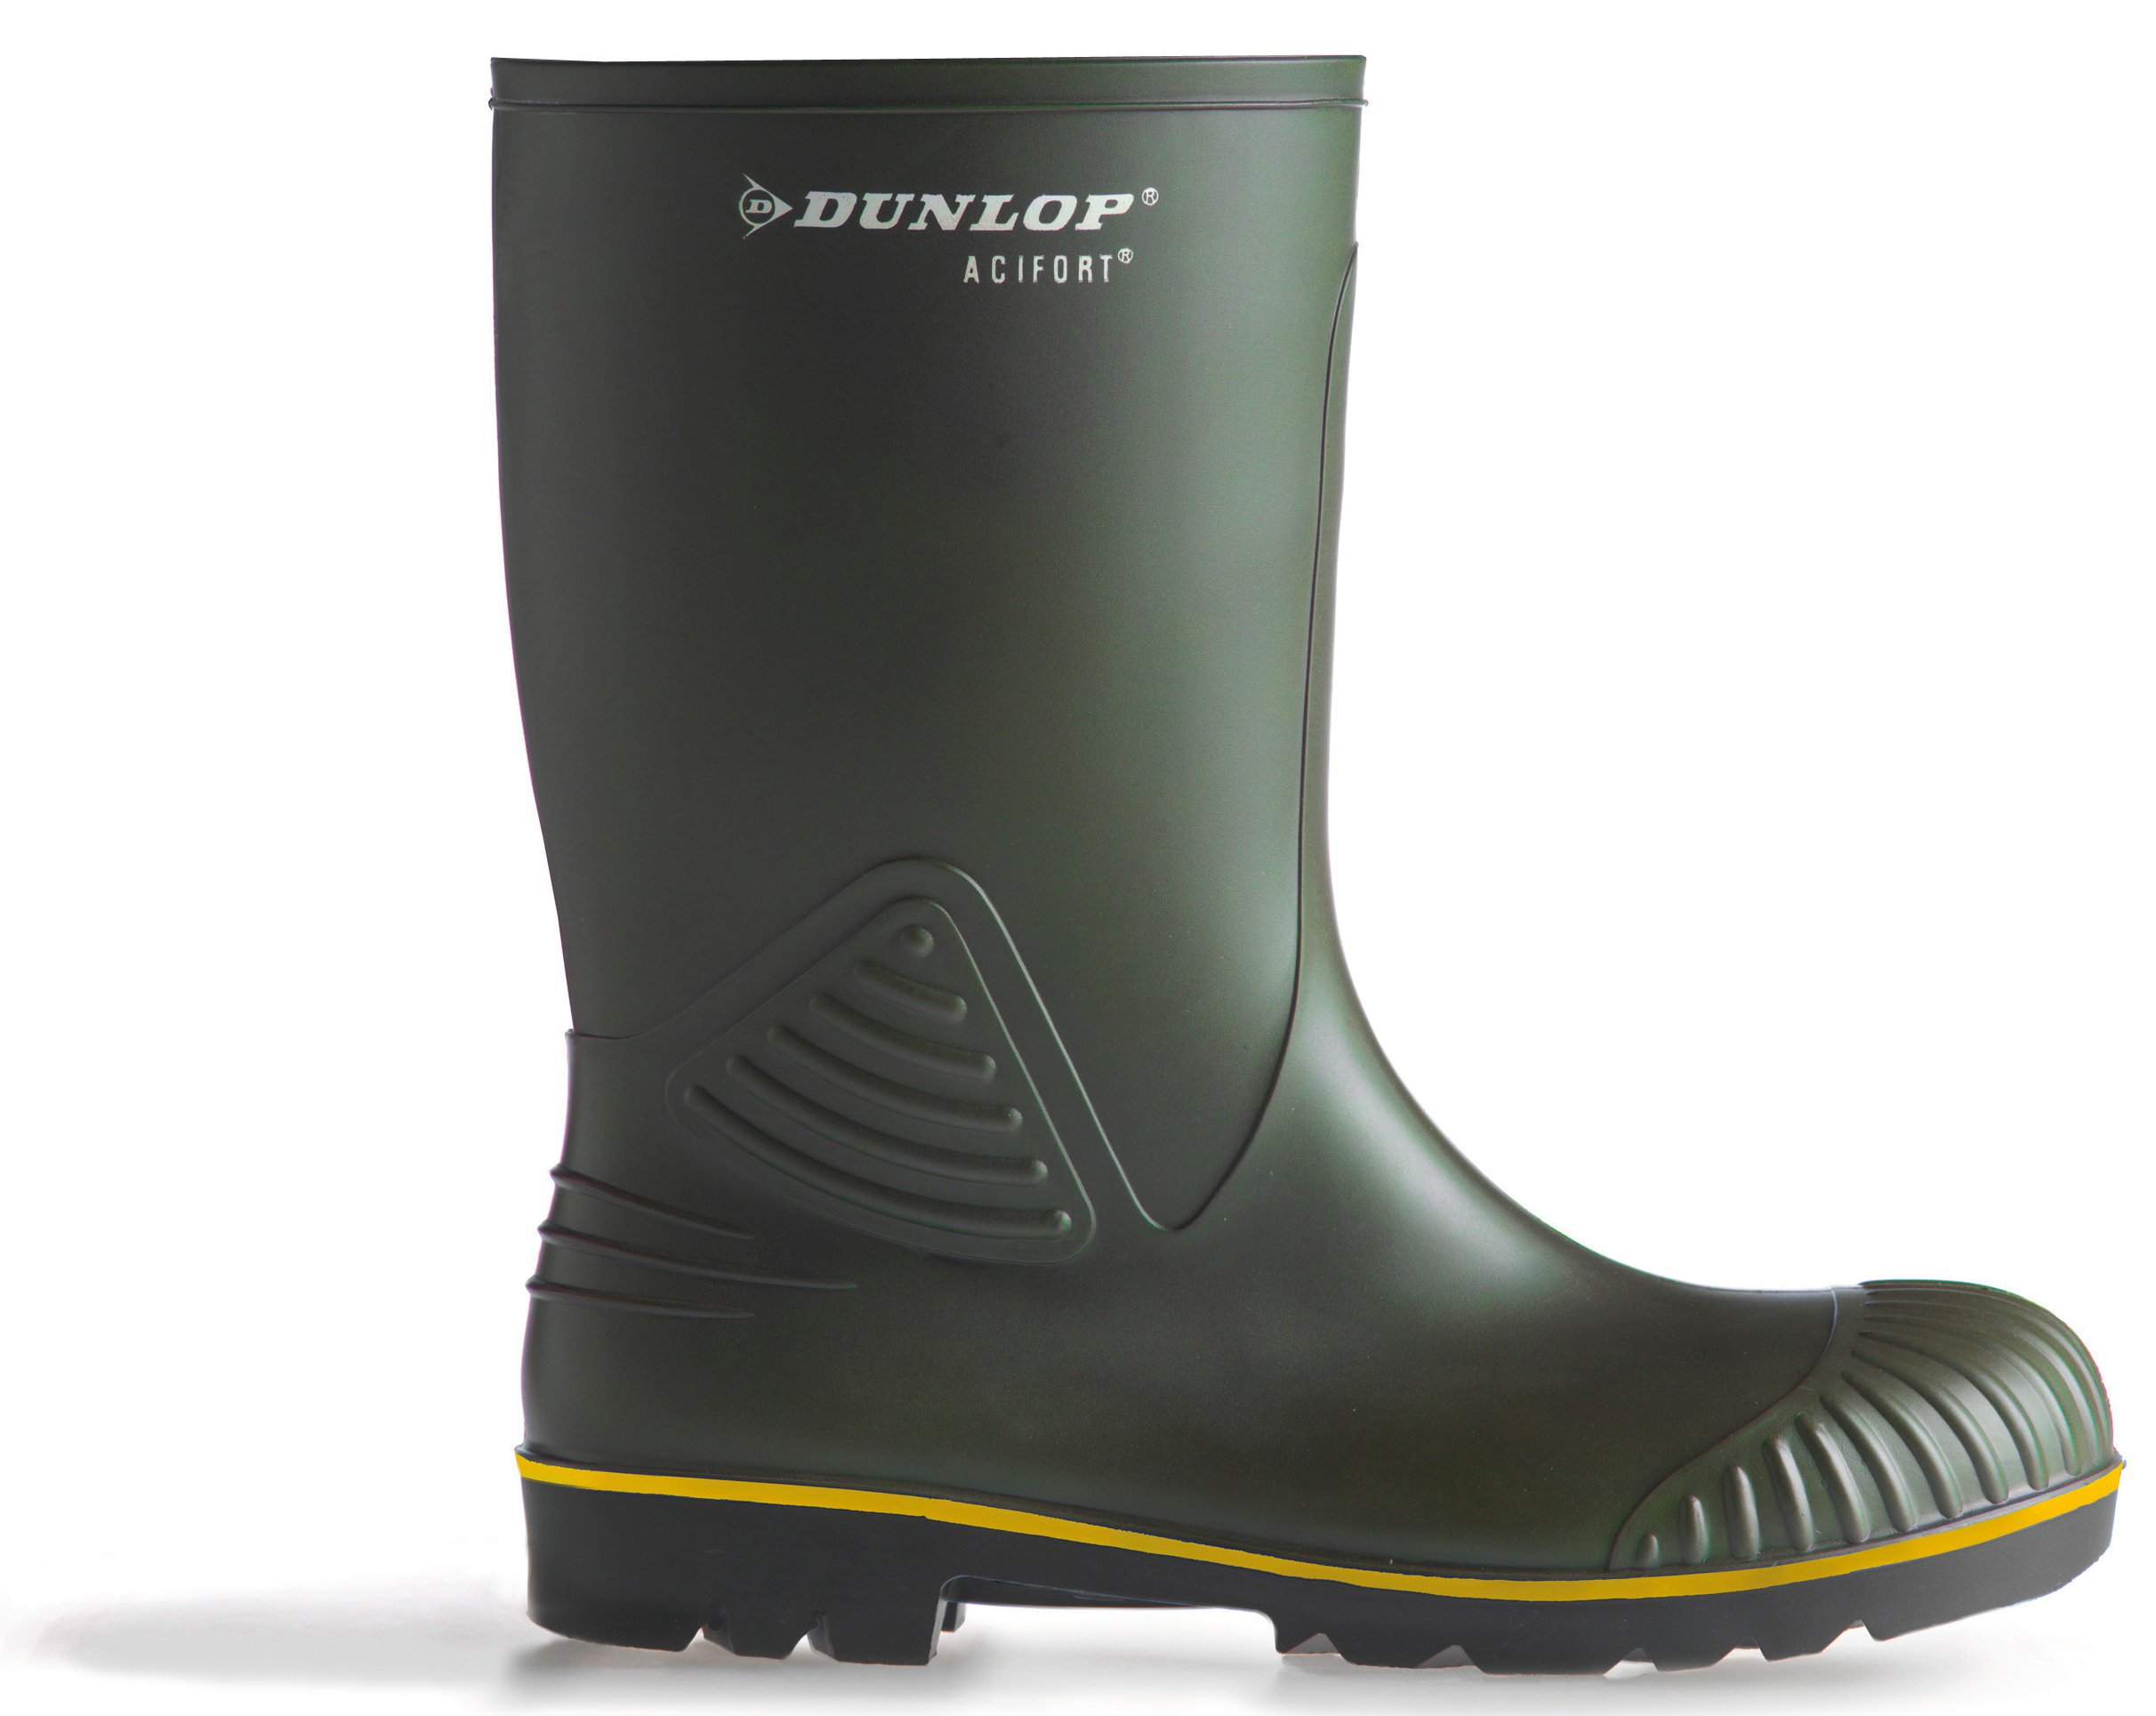 Dunlop Acifort Heavy Duty Calf støvler